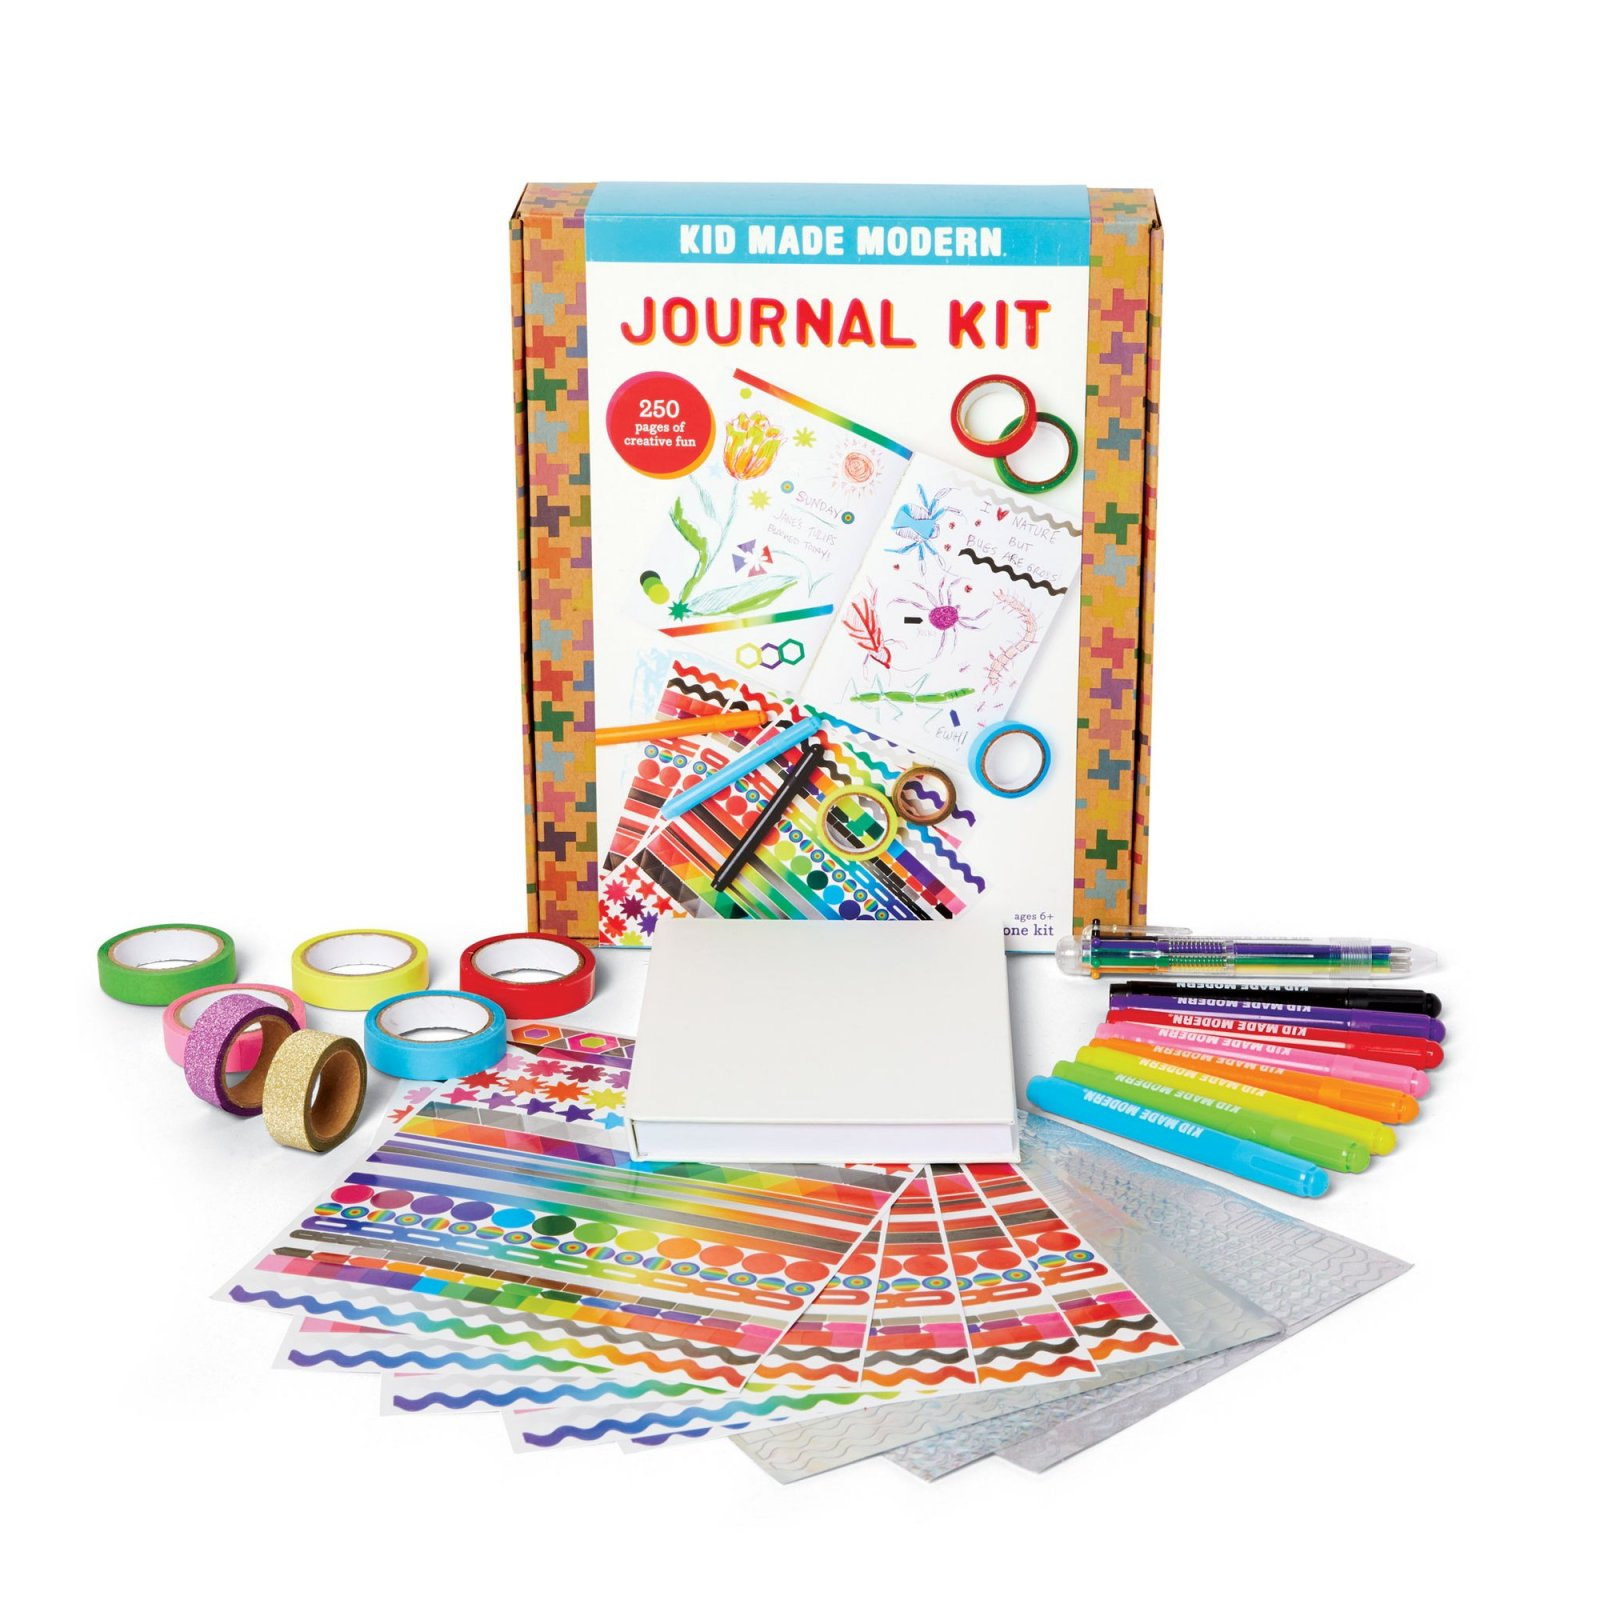 Journal Kit by Kid Made Modern